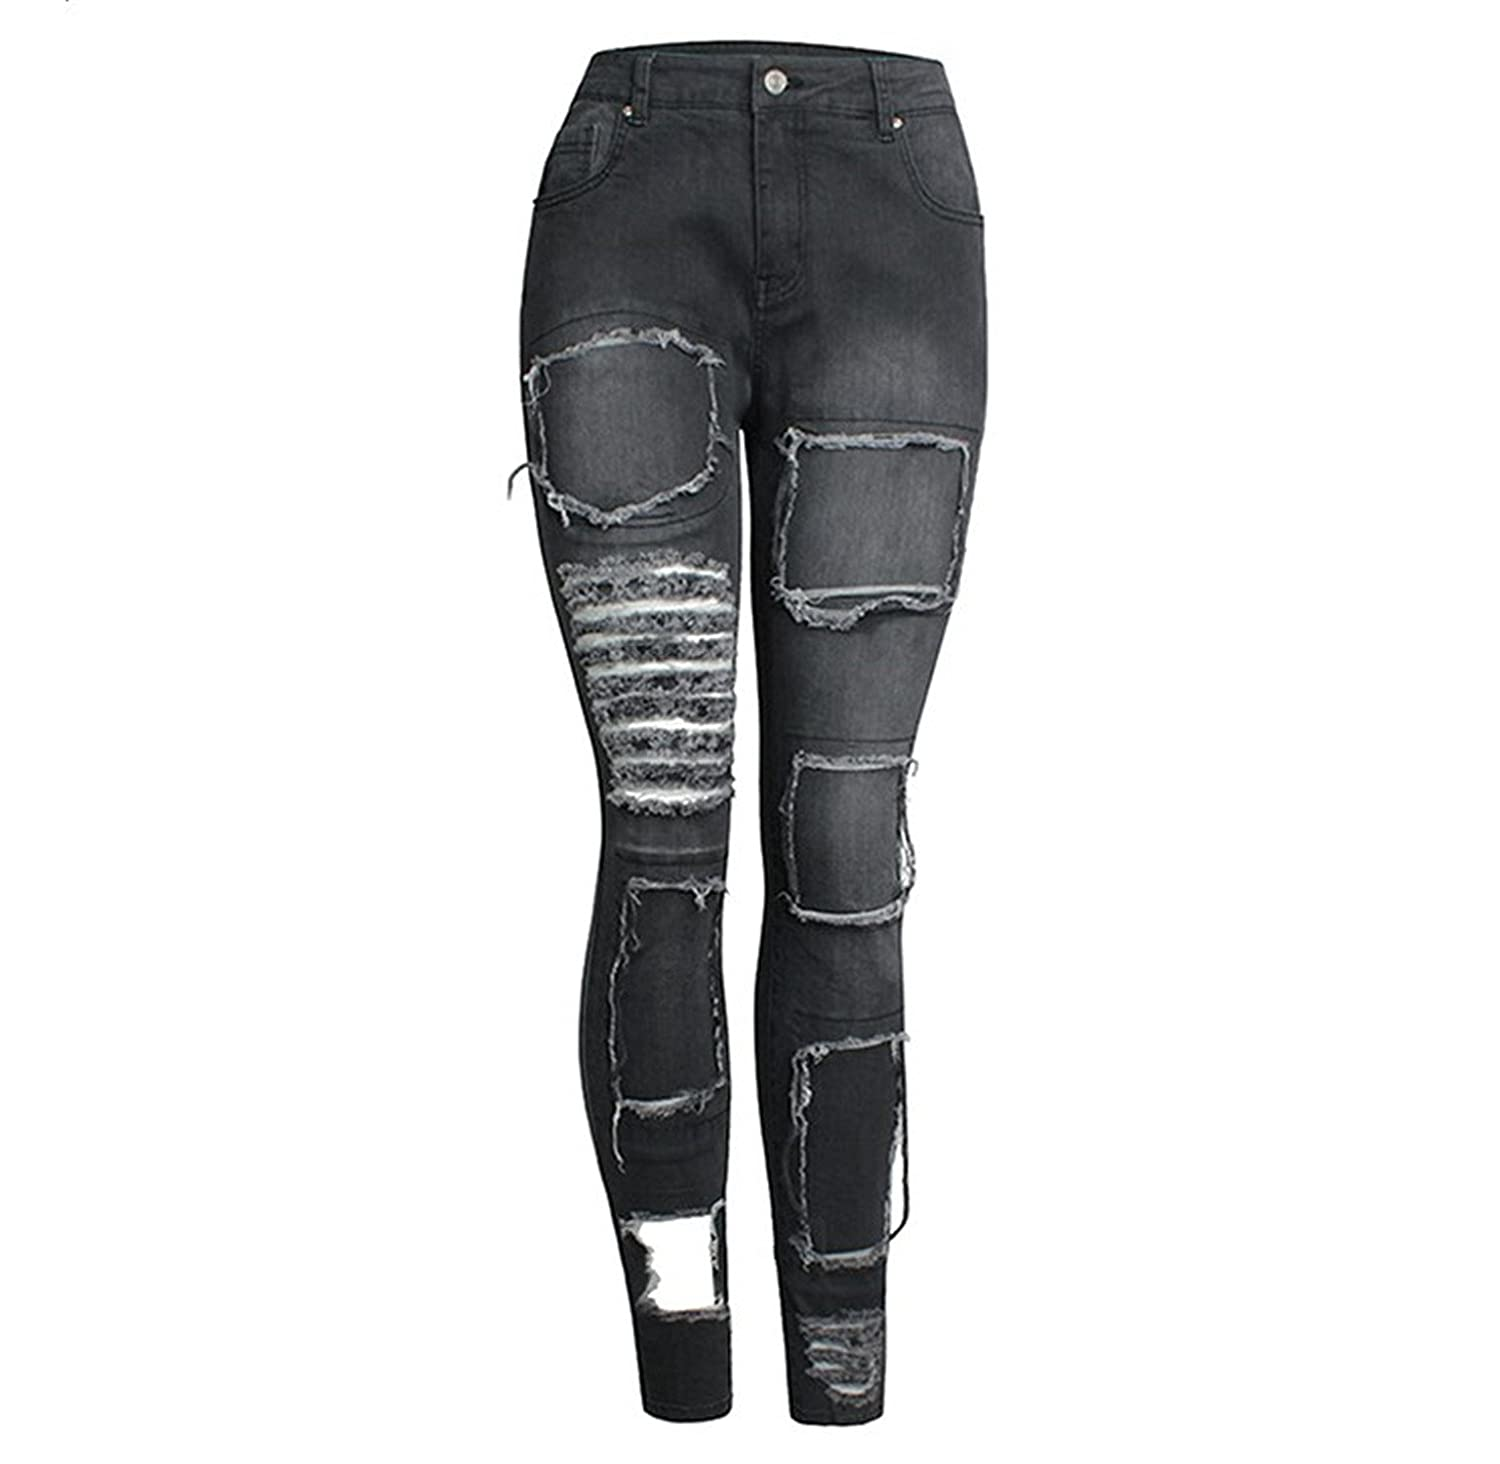 Habitaen New Fashion Ladies Denim Pants Stretch Womens High Street Jeans Faded Black Ripped Skinny Jeans Female